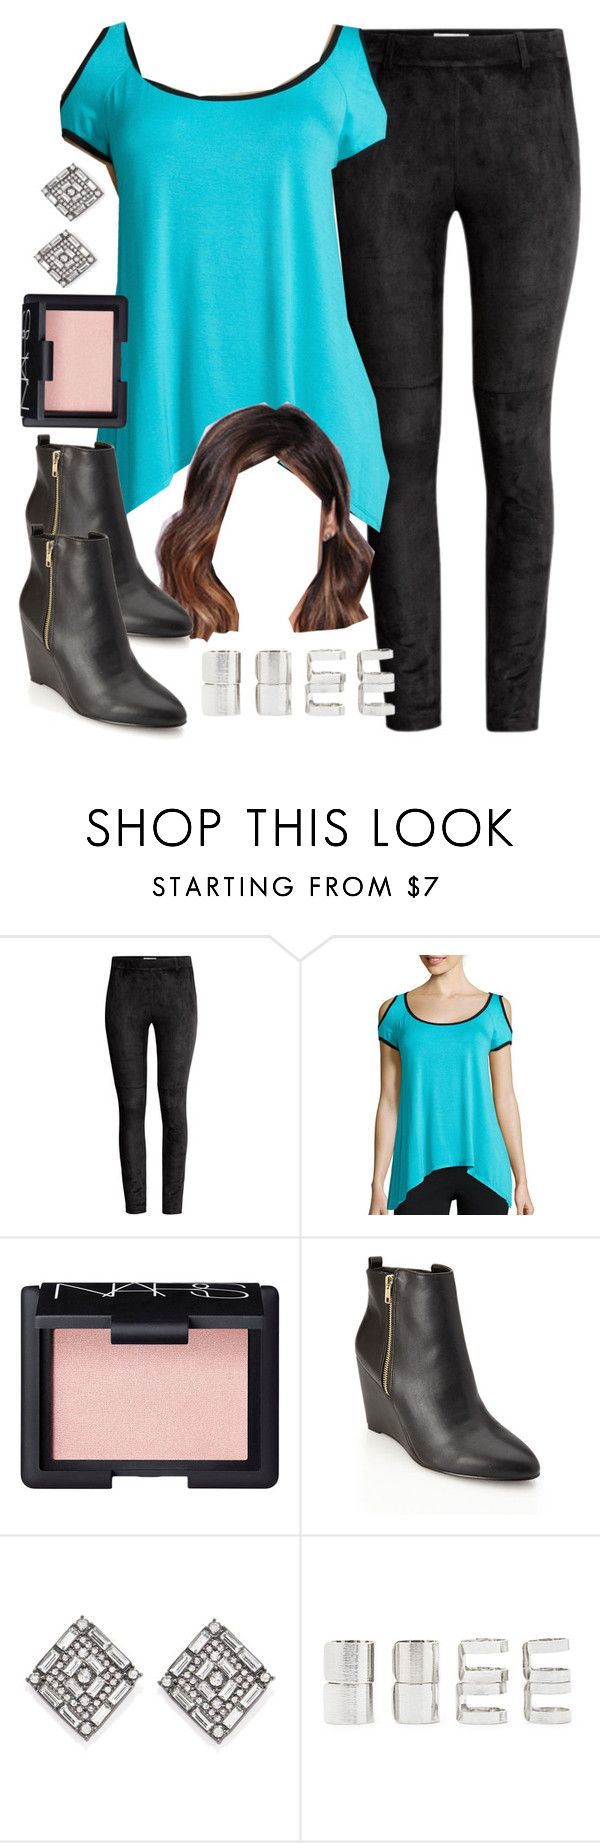 """""""Aria Montgomery inspired outfit for a Super Bowl party"""" by liarsstyle ❤ liked on Polyvore featuring H&M, Bisou Bisou, NARS Cosmetics, Forever 21, women's clothing, women's fashion, women, female, woman and misses"""